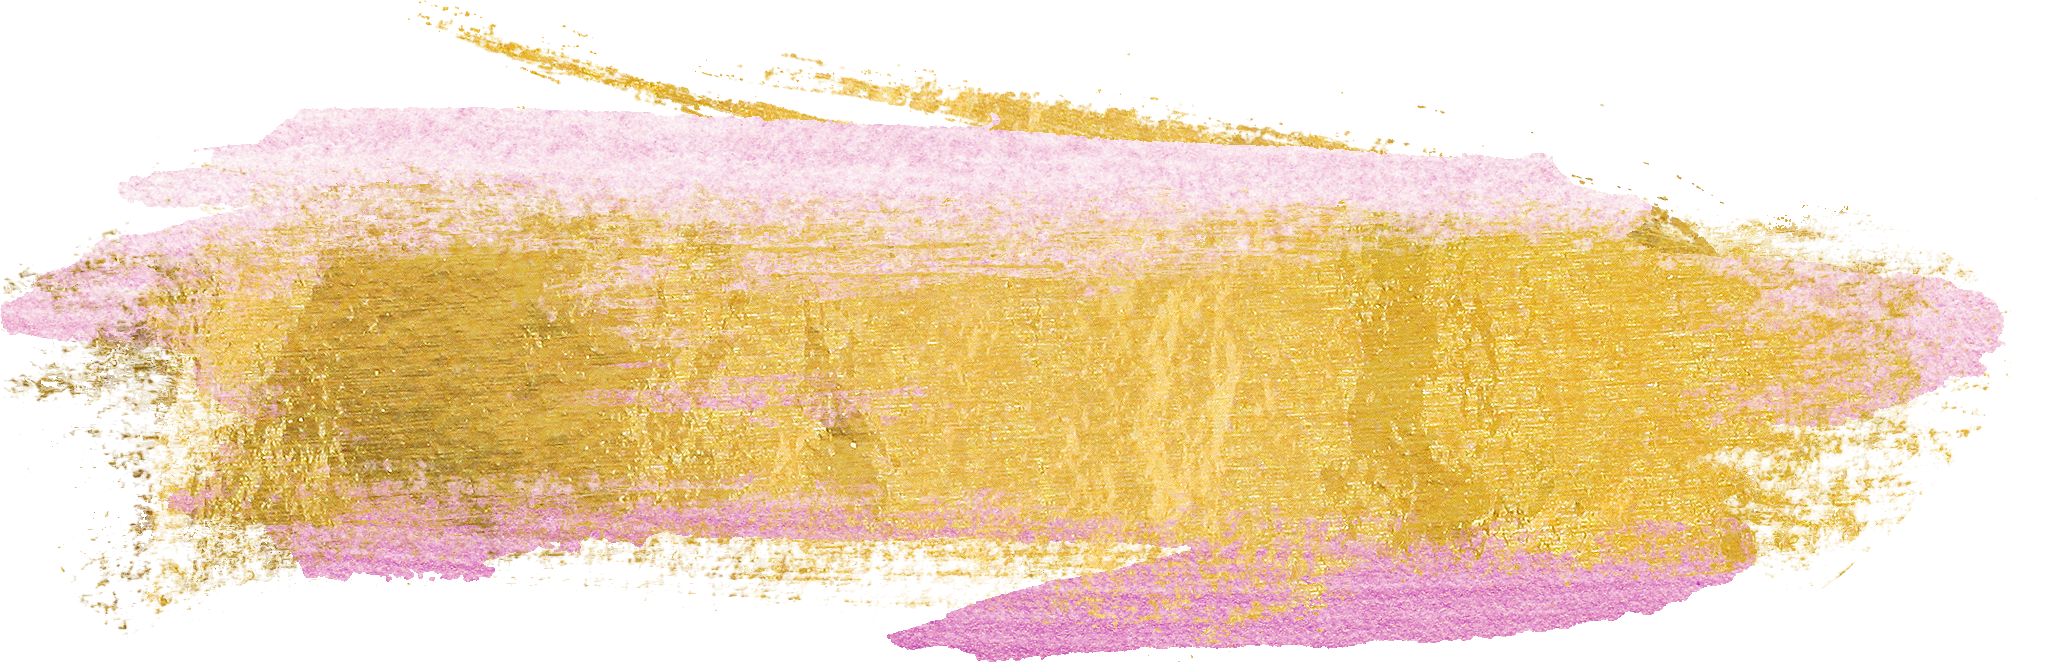 Free Gold Paint Brush Strokes -CU ok! - Pink And Gold PNG